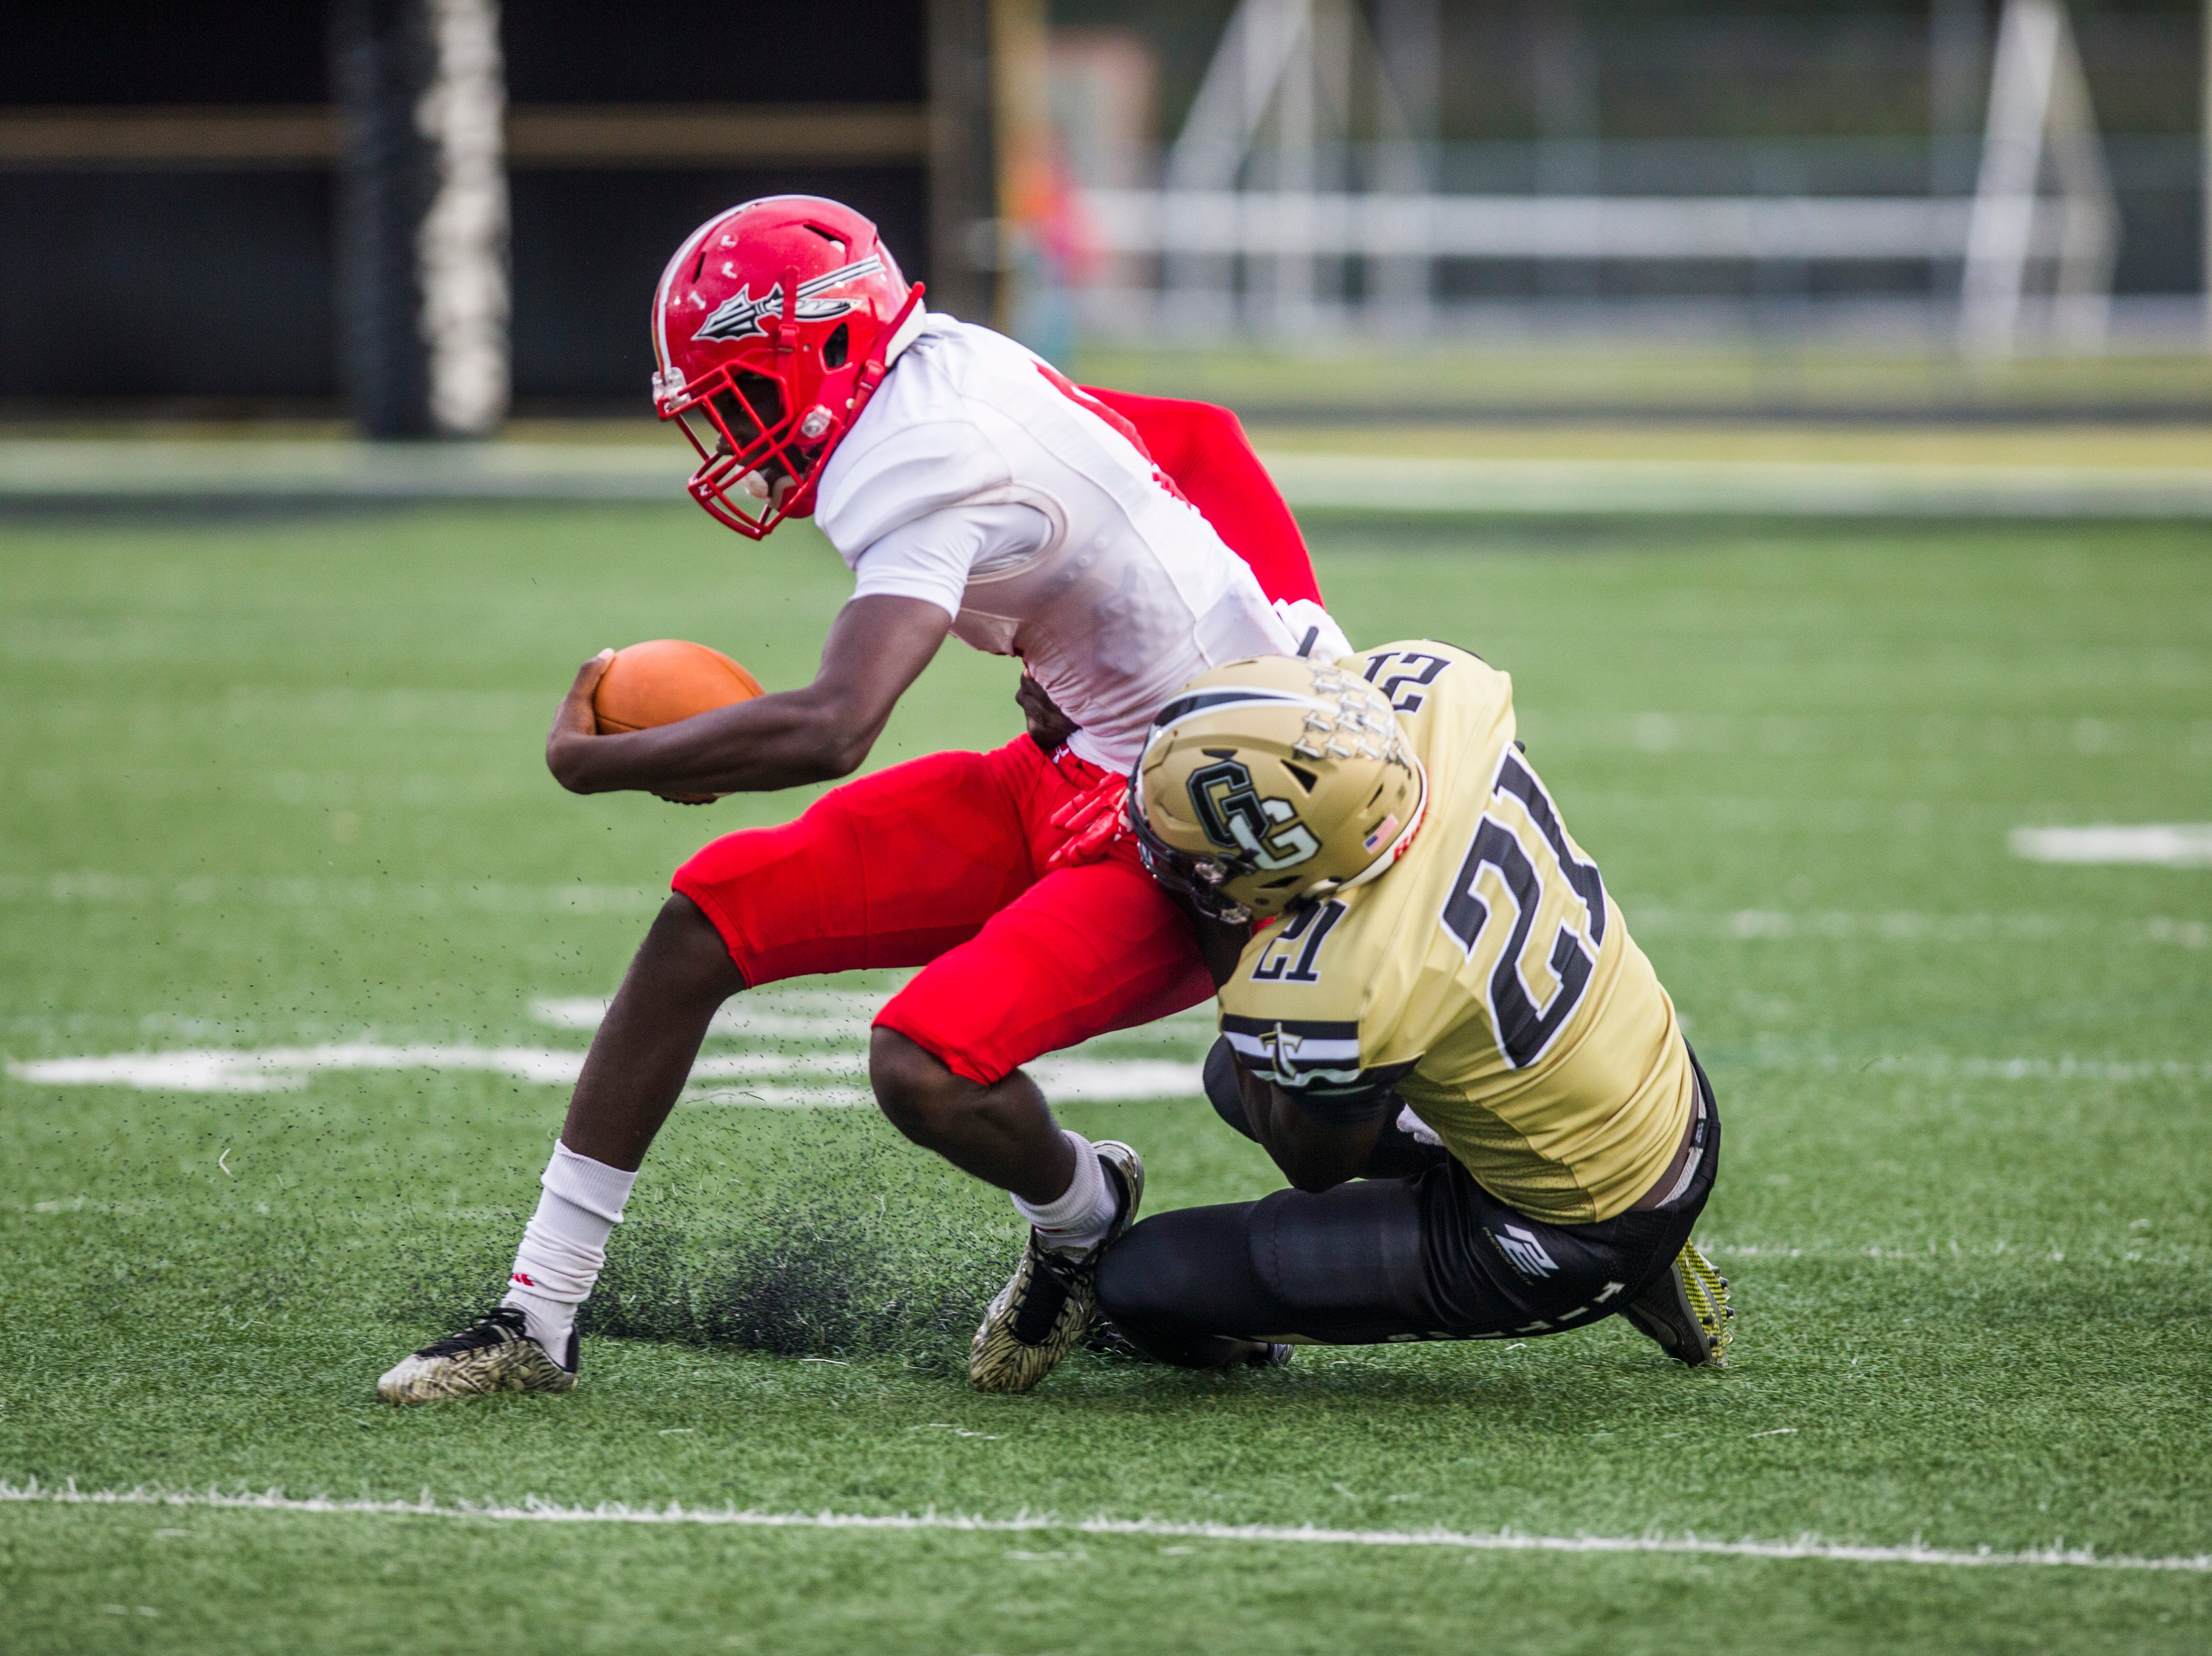 Golden Gate senior line backer Kevin Jean Jacques tackles Immokalee wide receiver Joseph Elischama during the game at Golden Gate High School on Friday, Aug. 24, 2018.